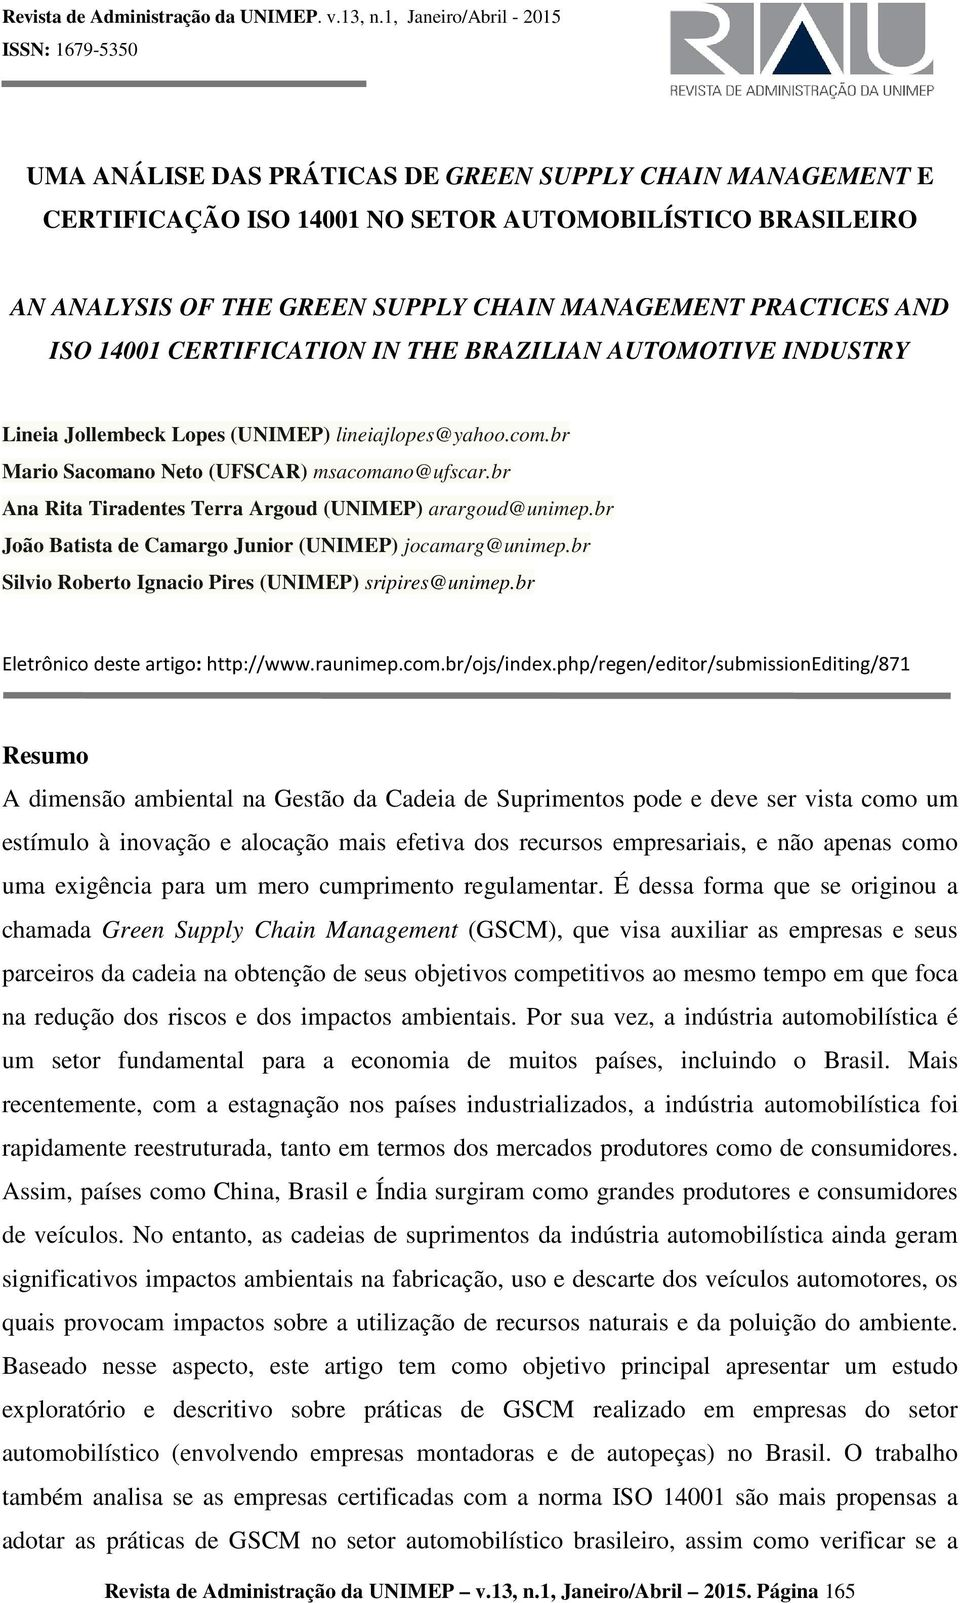 MANAGEMENT PRACTICES AND ISO 14001 CERTIFICATION IN THE BRAZILIAN AUTOMOTIVE INDUSTRY Lineia Jollembeck Lopes (UNIMEP) lineiajlopes@yahoo.com.br Mario Sacomano Neto (UFSCAR) msacomano@ufscar.